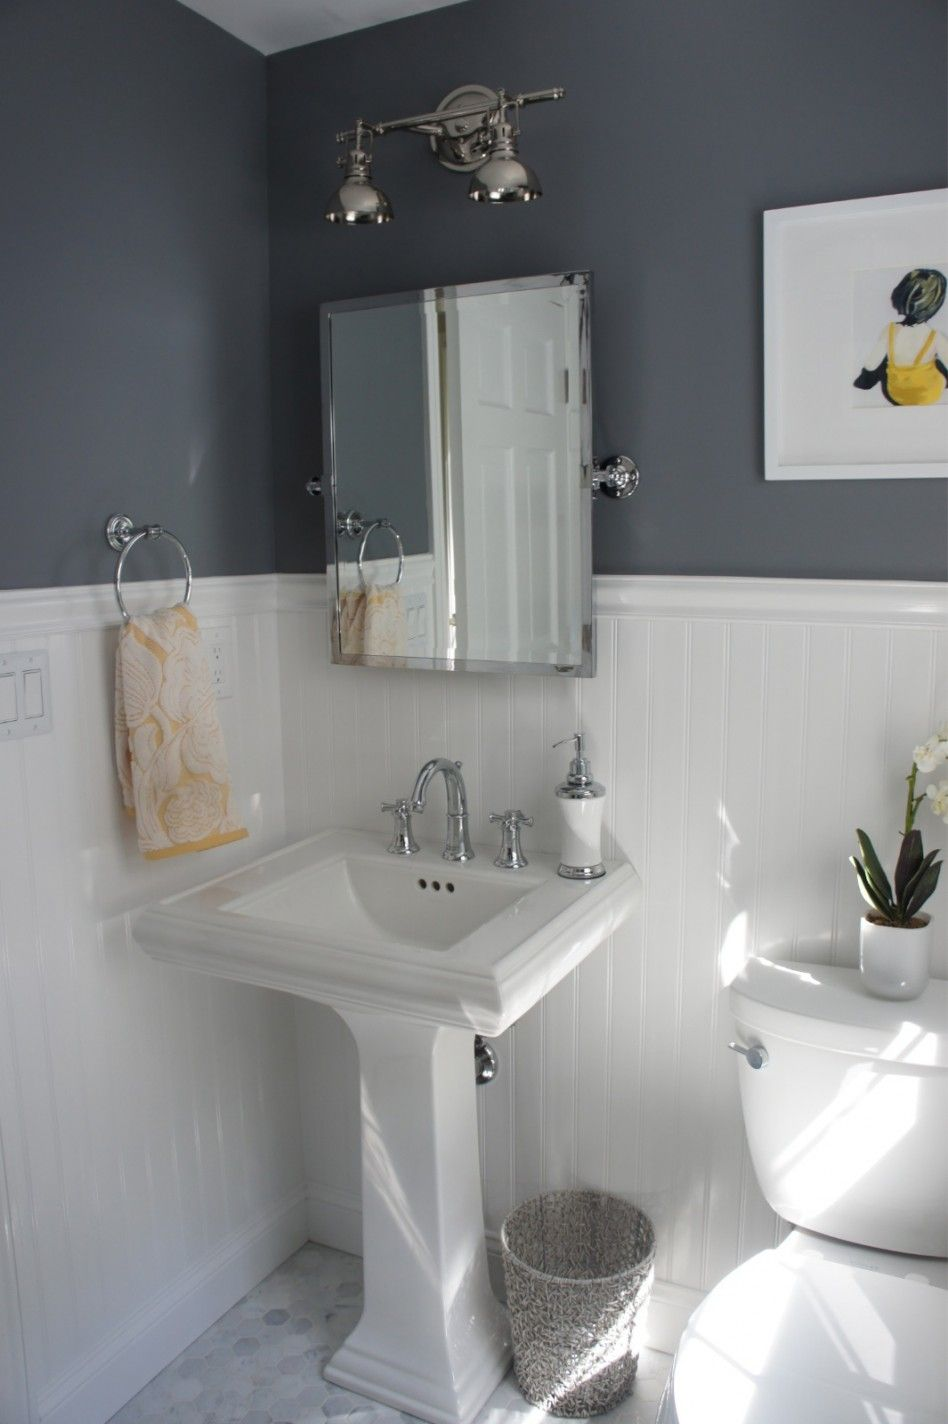 Makeover Bathroom Ideas Picture Using Beadboard Cool Small Bathroom Ideas With White Beadboard Wains Wainscoting Bathroom Bathroom Makeover Bathrooms Remodel